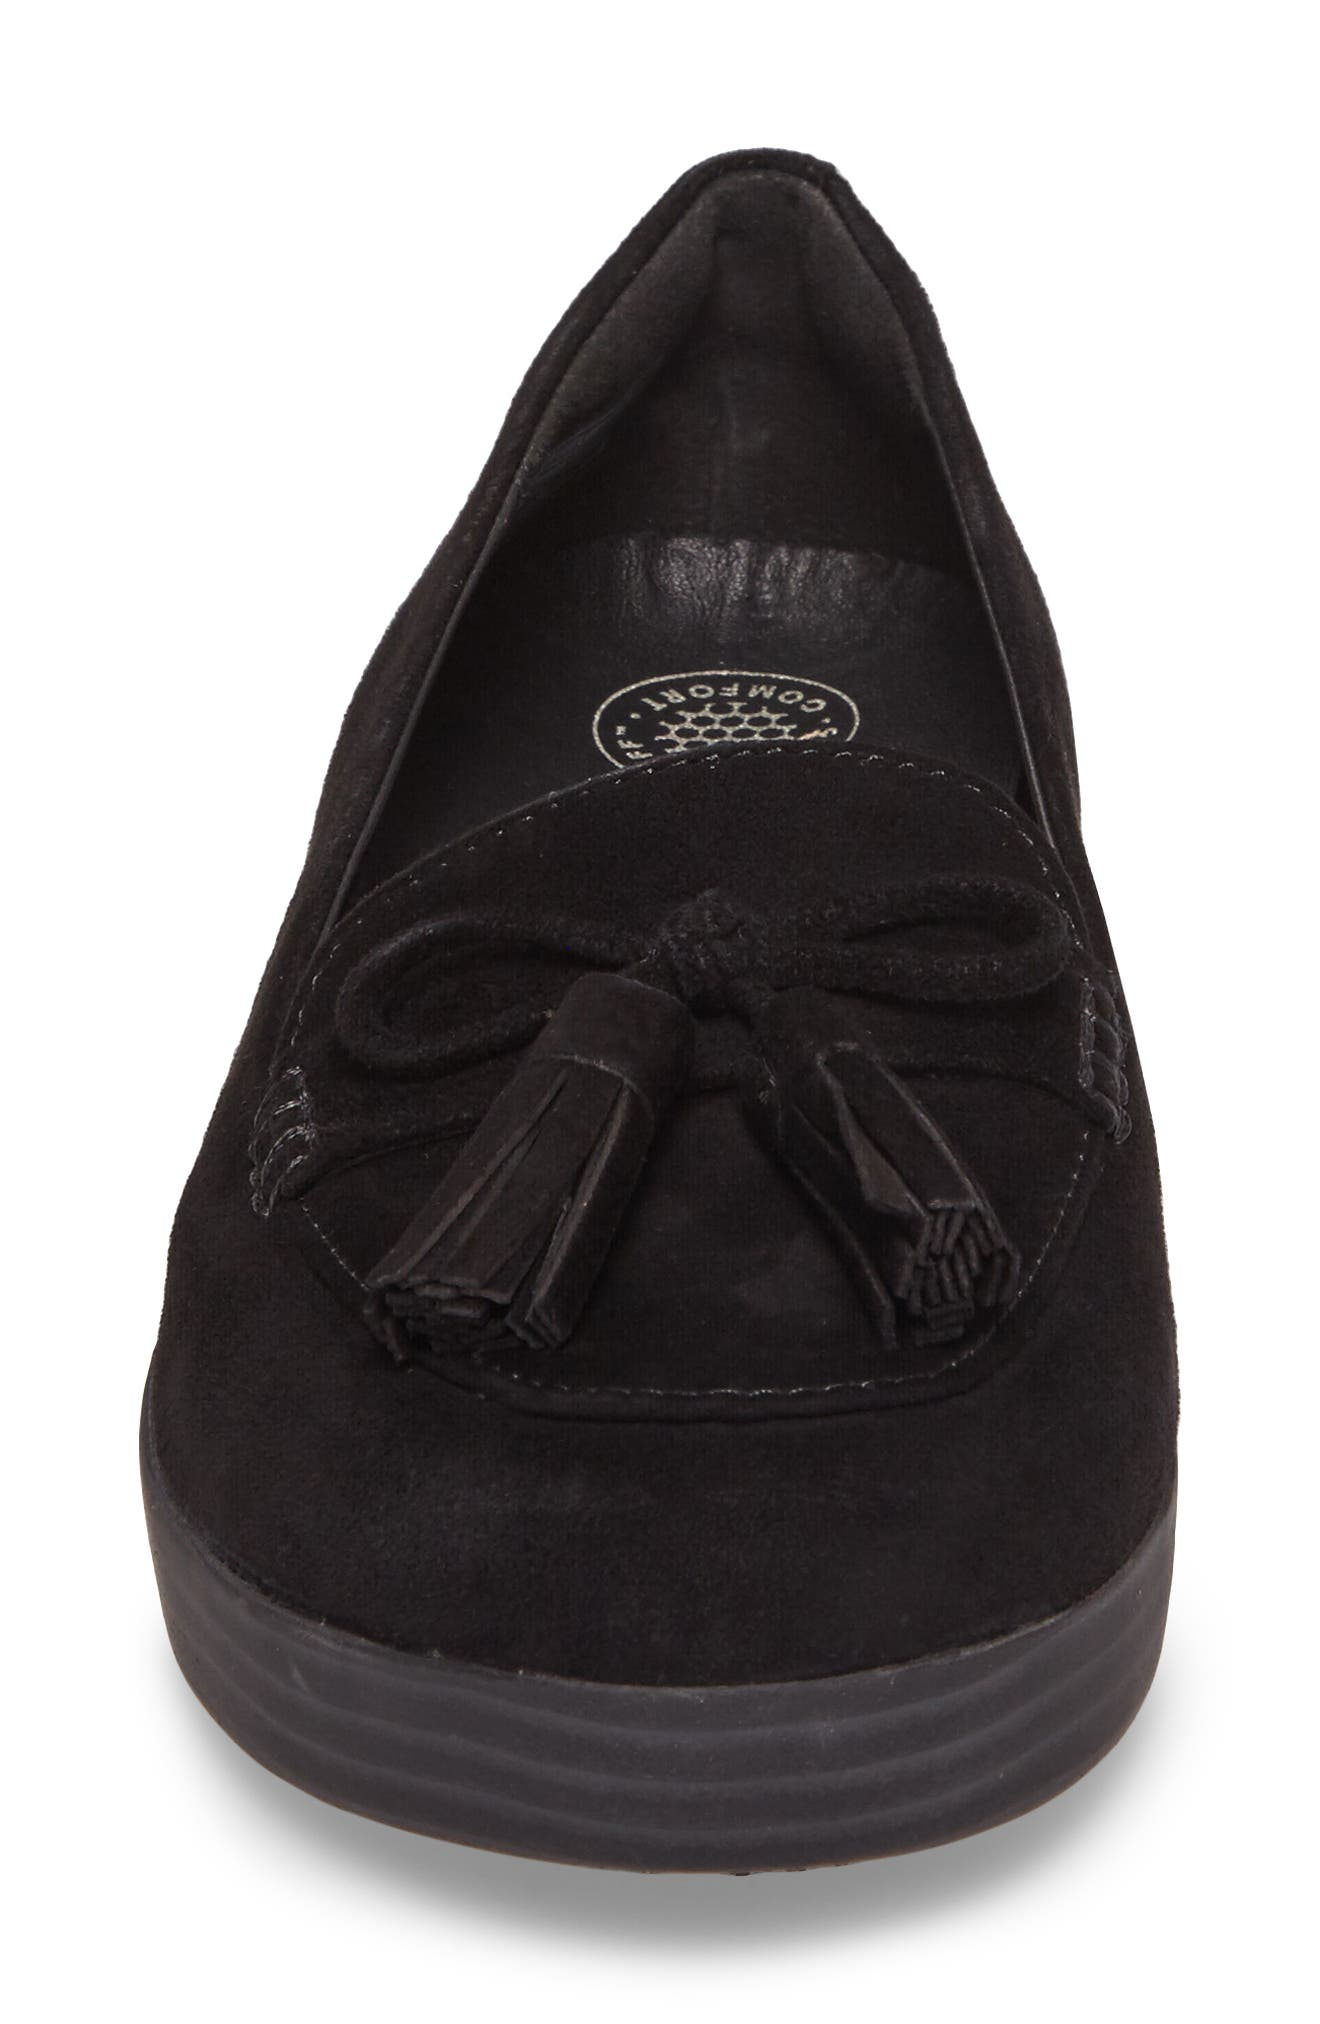 Tassel Bow Sneakerloafer<sup>™</sup> Water Repellent Flat,                             Alternate thumbnail 4, color,                             001